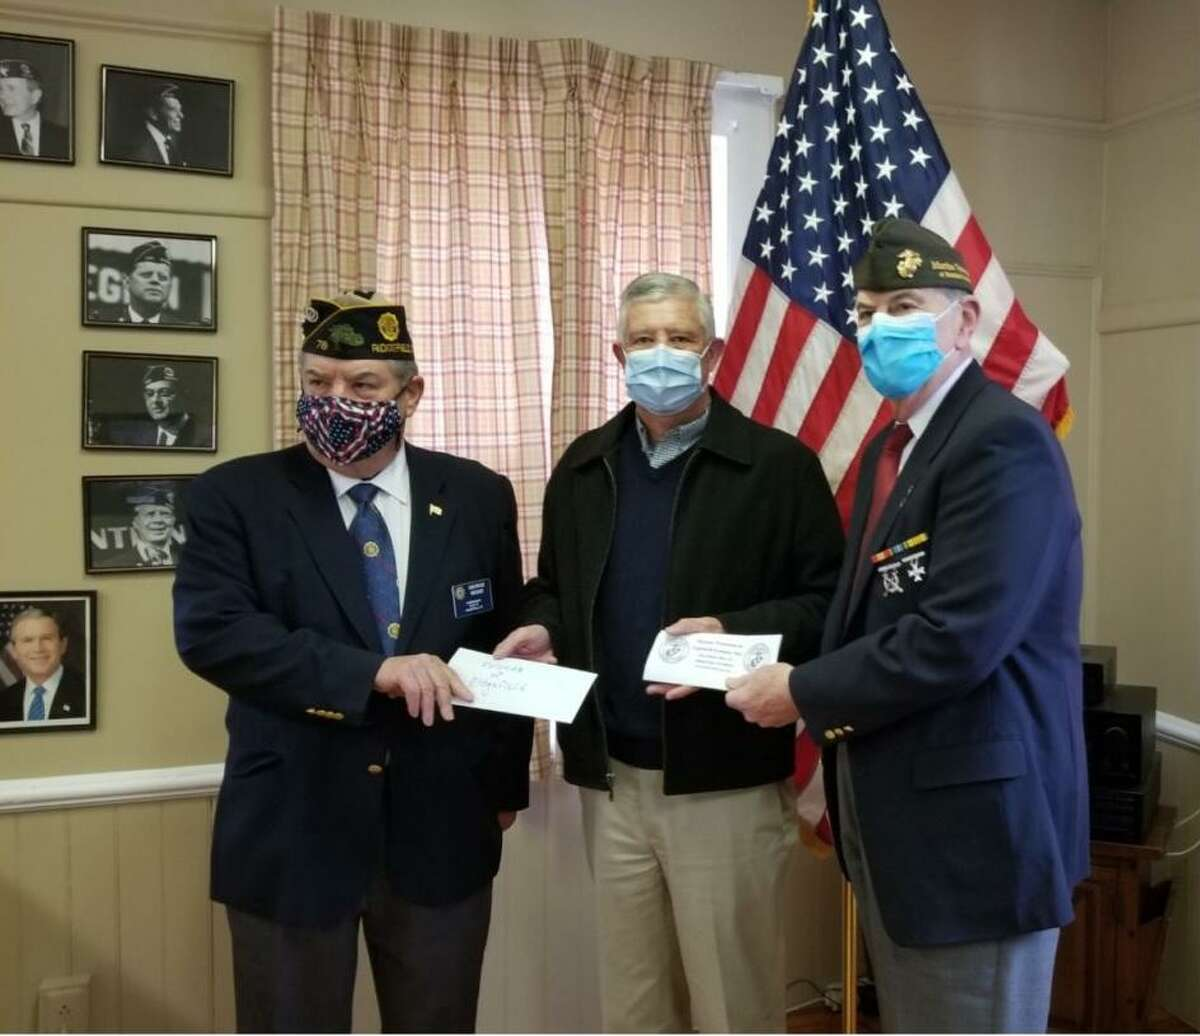 George Besse of the Ridgefield American Legion and Dick Tiani of the Marine Veterans of Fairfield County recently presented $1,000 donation checks for the New Fund to Ridgefield Selectman Bob Hebert at the American Legion Post 78.